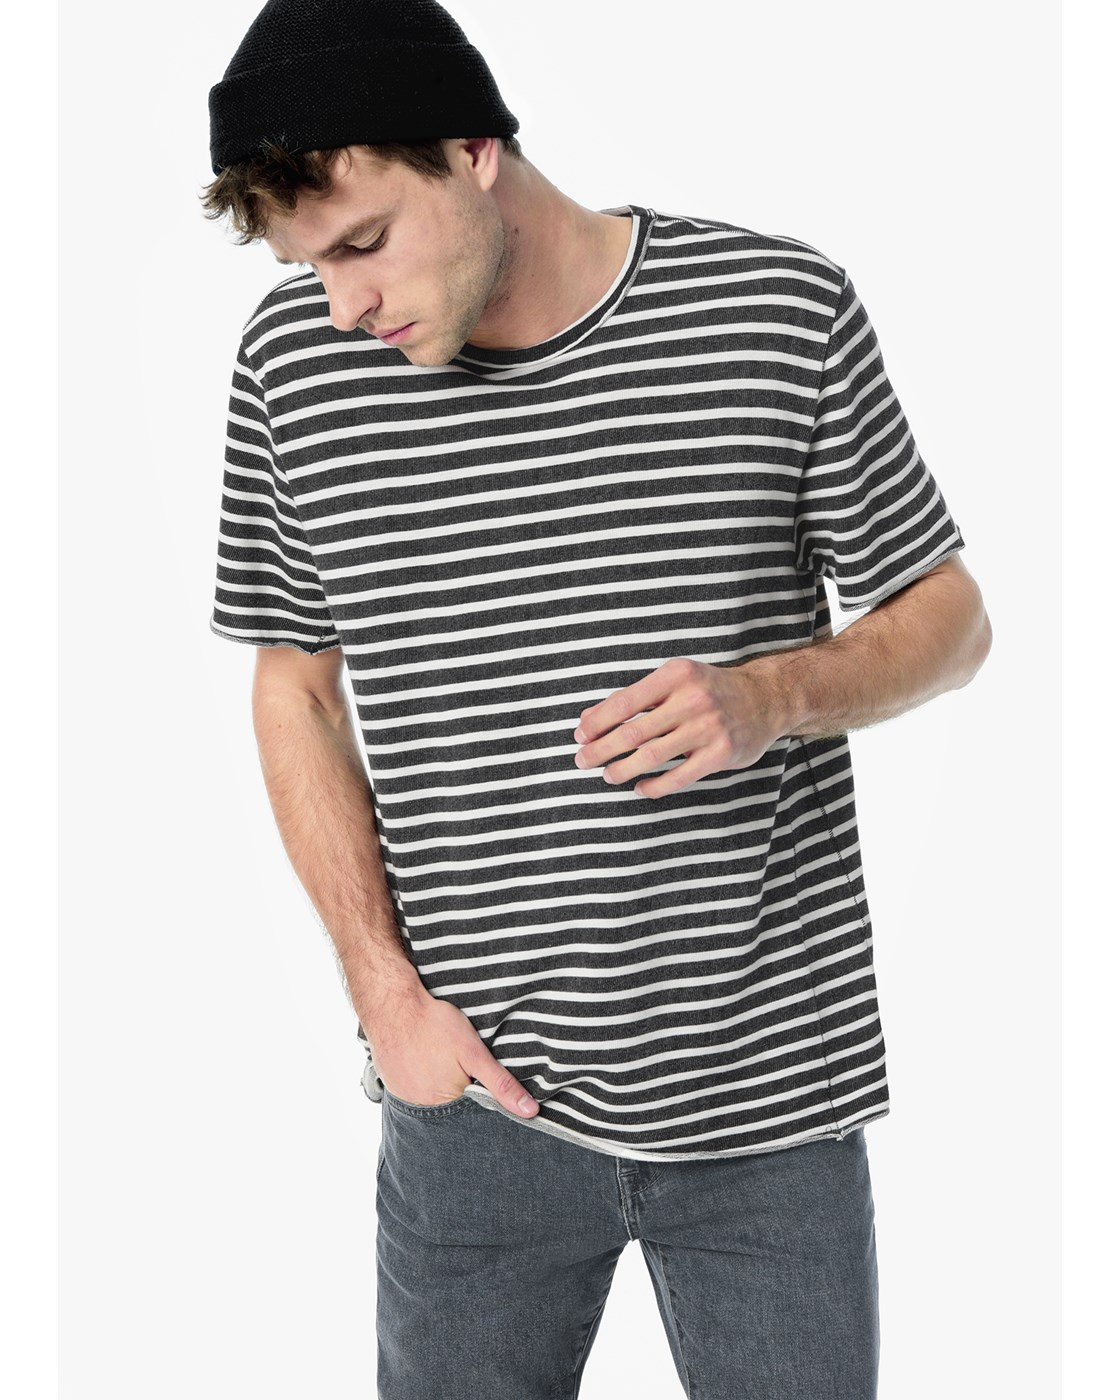 ENGINEERED BLK/WHT FRENCH TERRY STRIPE